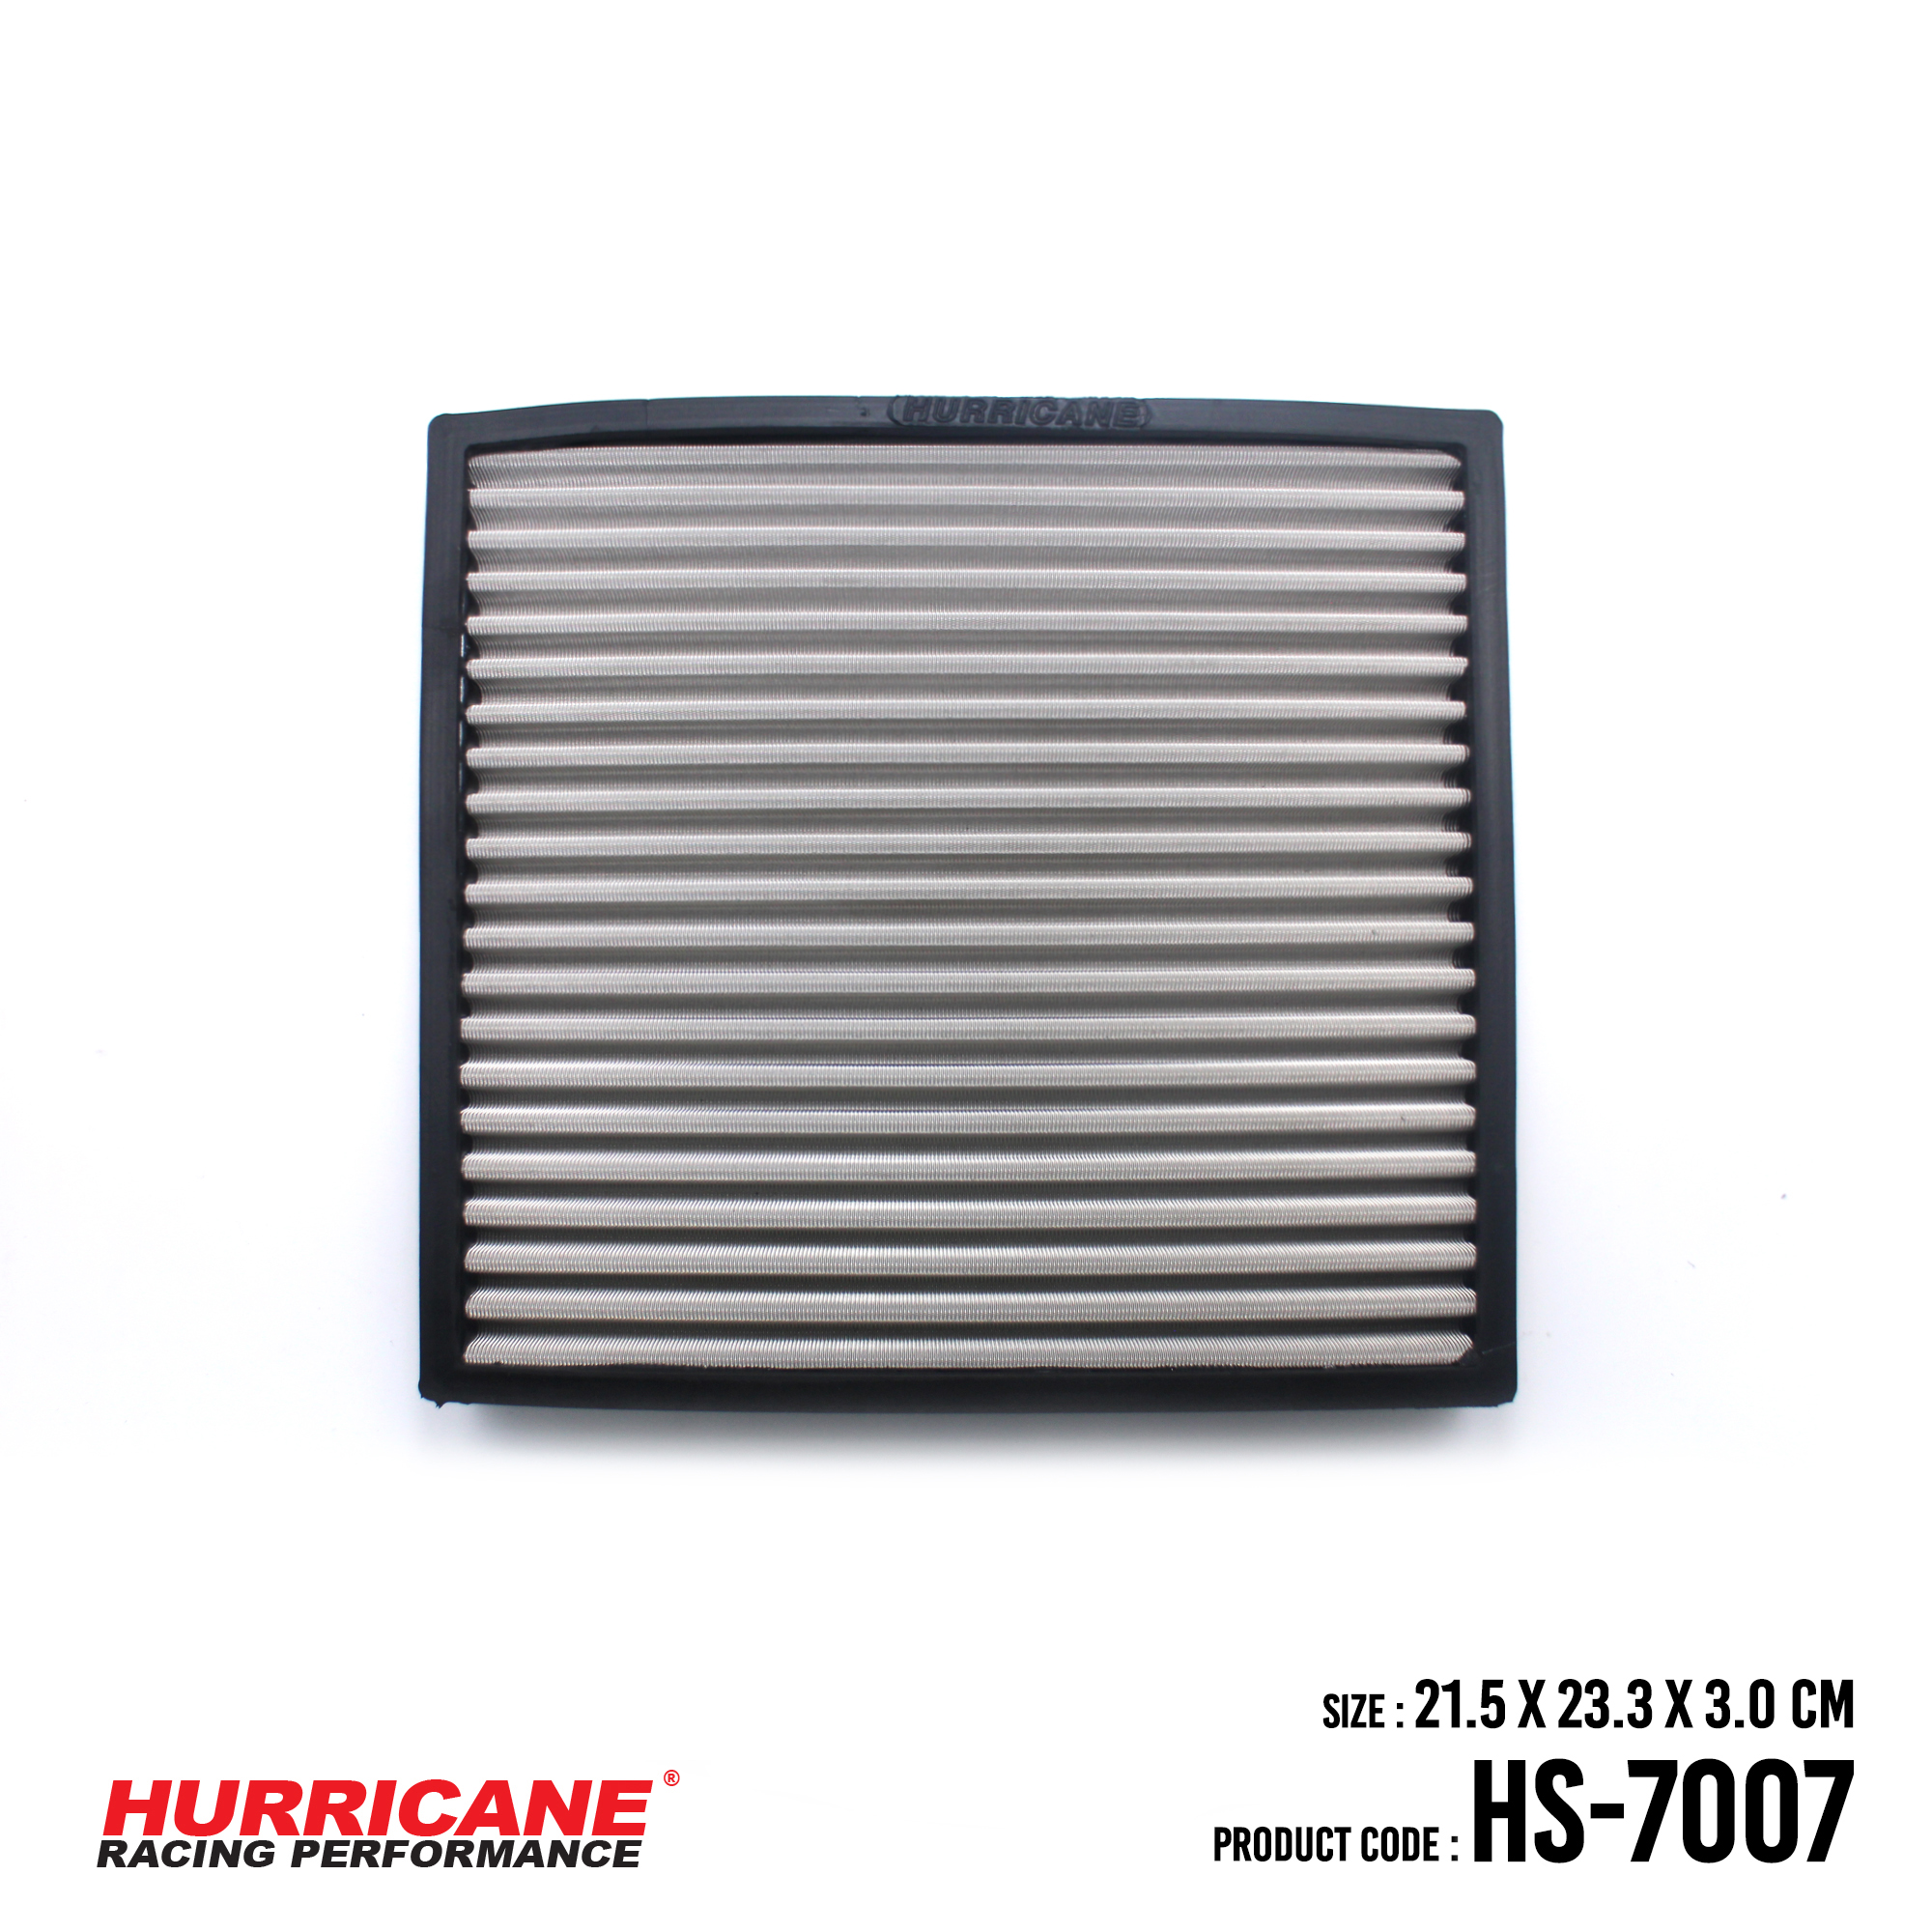 HURRICANE STAINLESS STEEL CABIN AIR FILTER FOR HS-7007 FordMazda